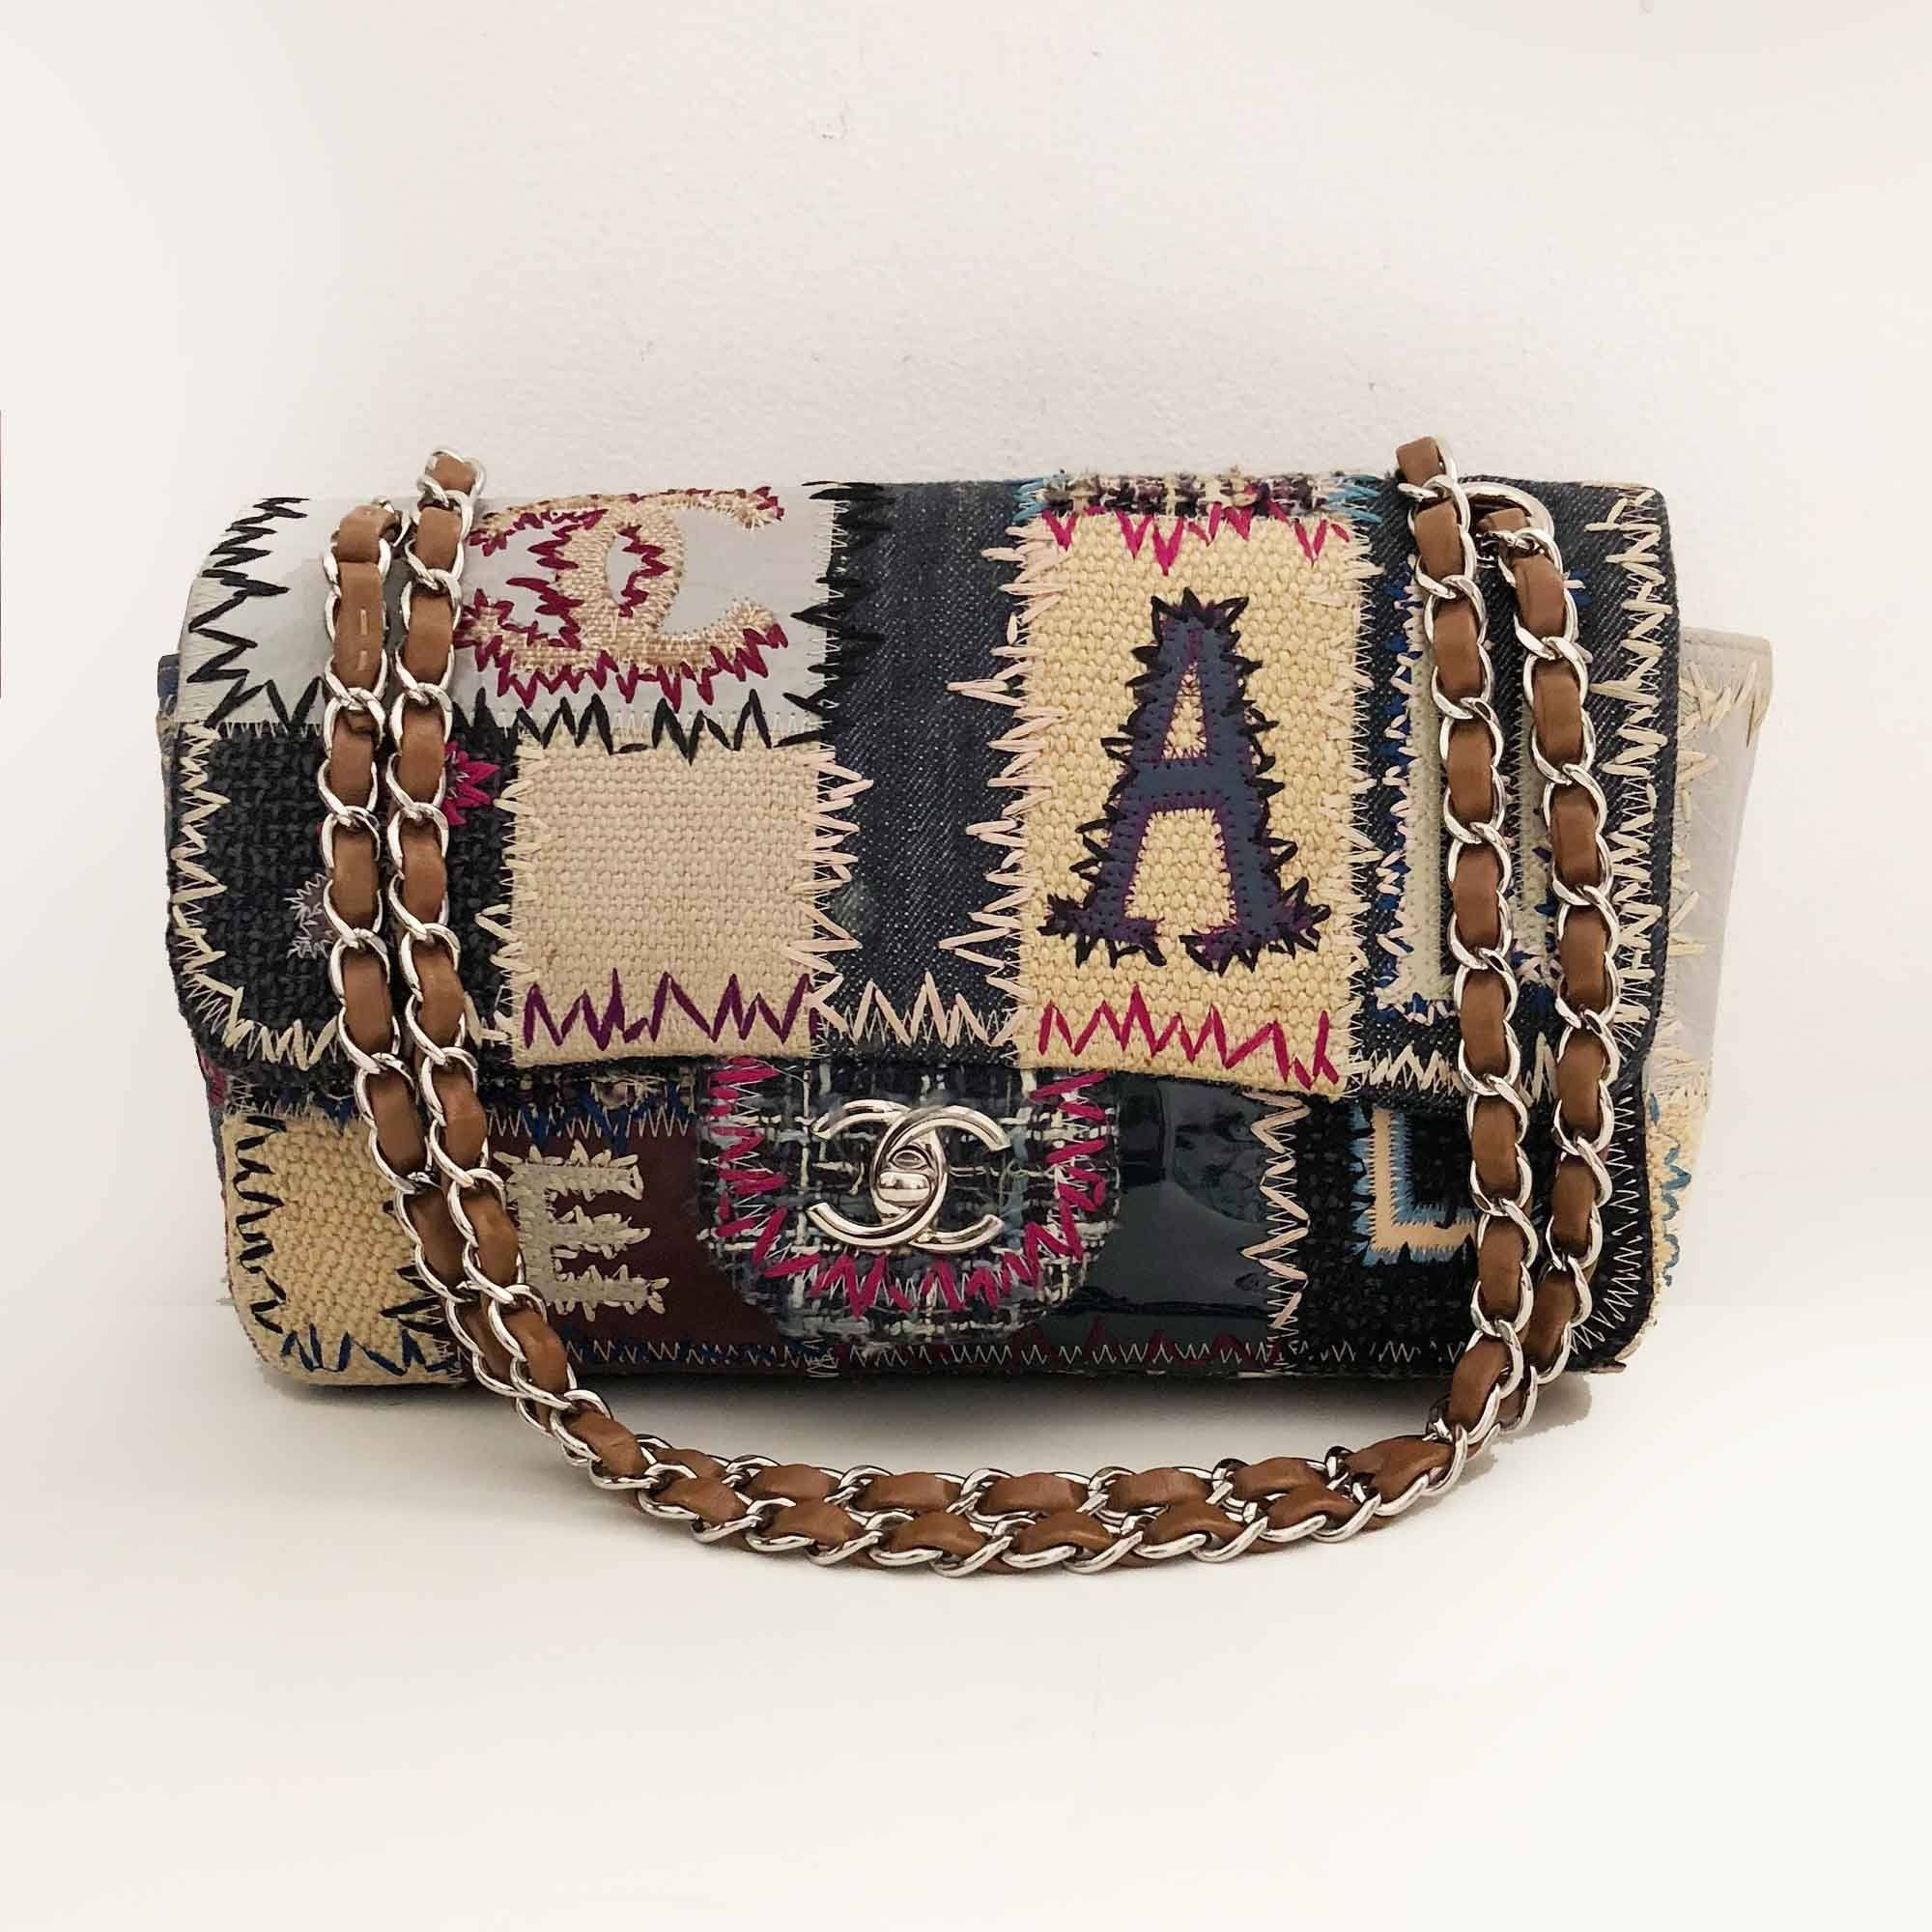 Chanel Jumbo Flap Bag Limited Edition Patchwork